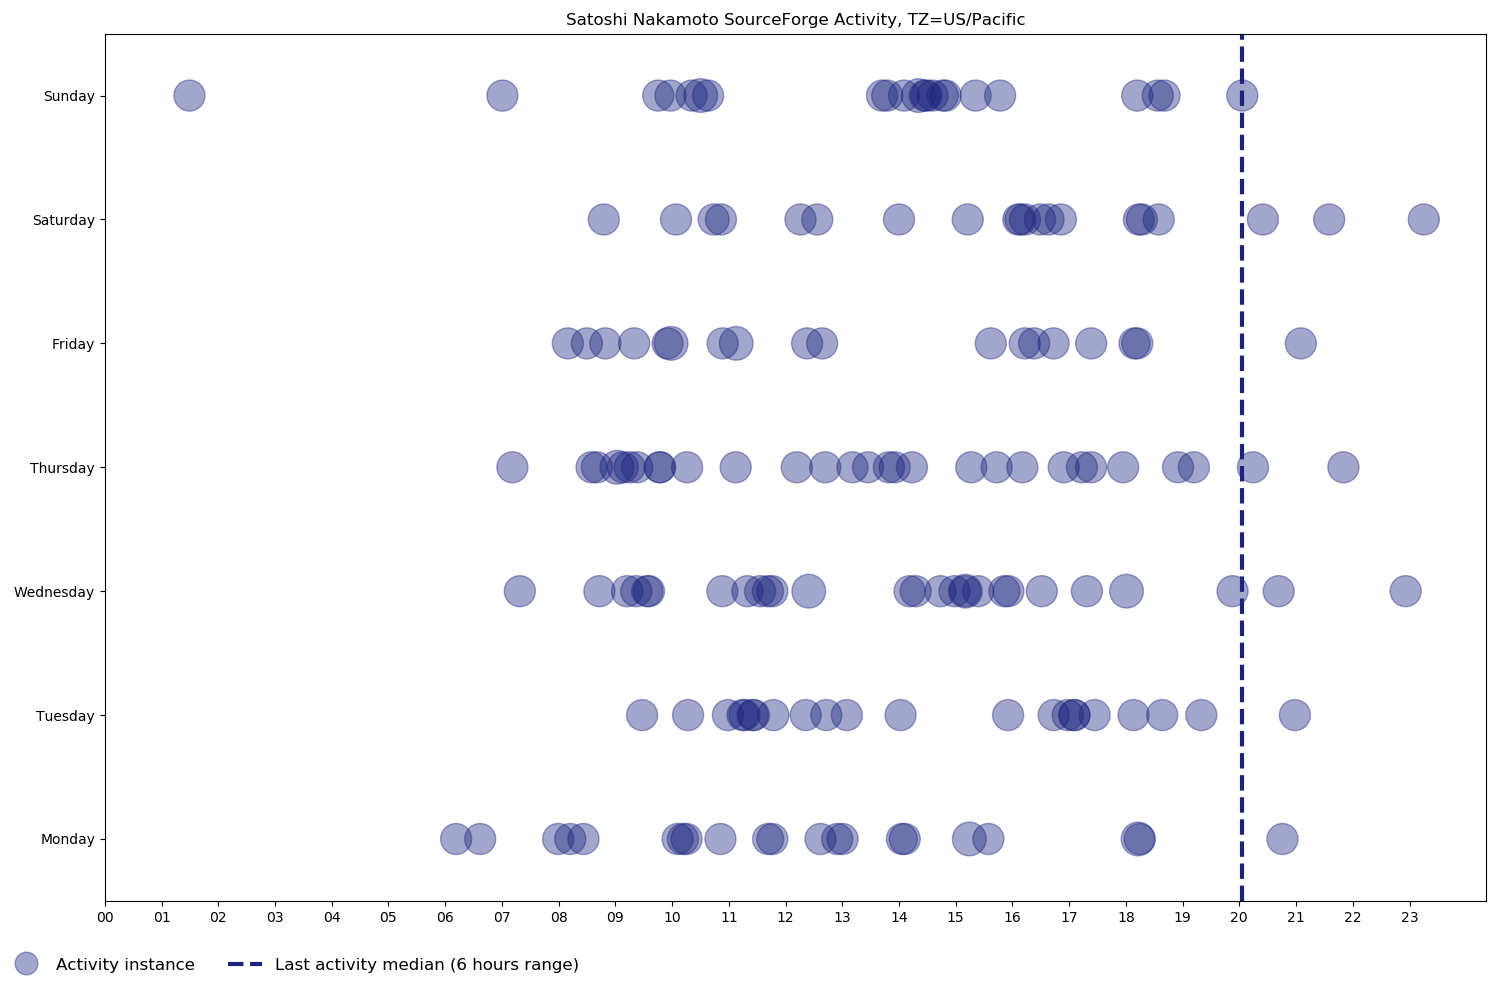 Scatter chart of Satoshi Nakamoto's SourceForge activity, from his first commit on October 21, 2009 to his last one on December 15, 2010, based on day of the week and time of day in the US/Pacific time zone.